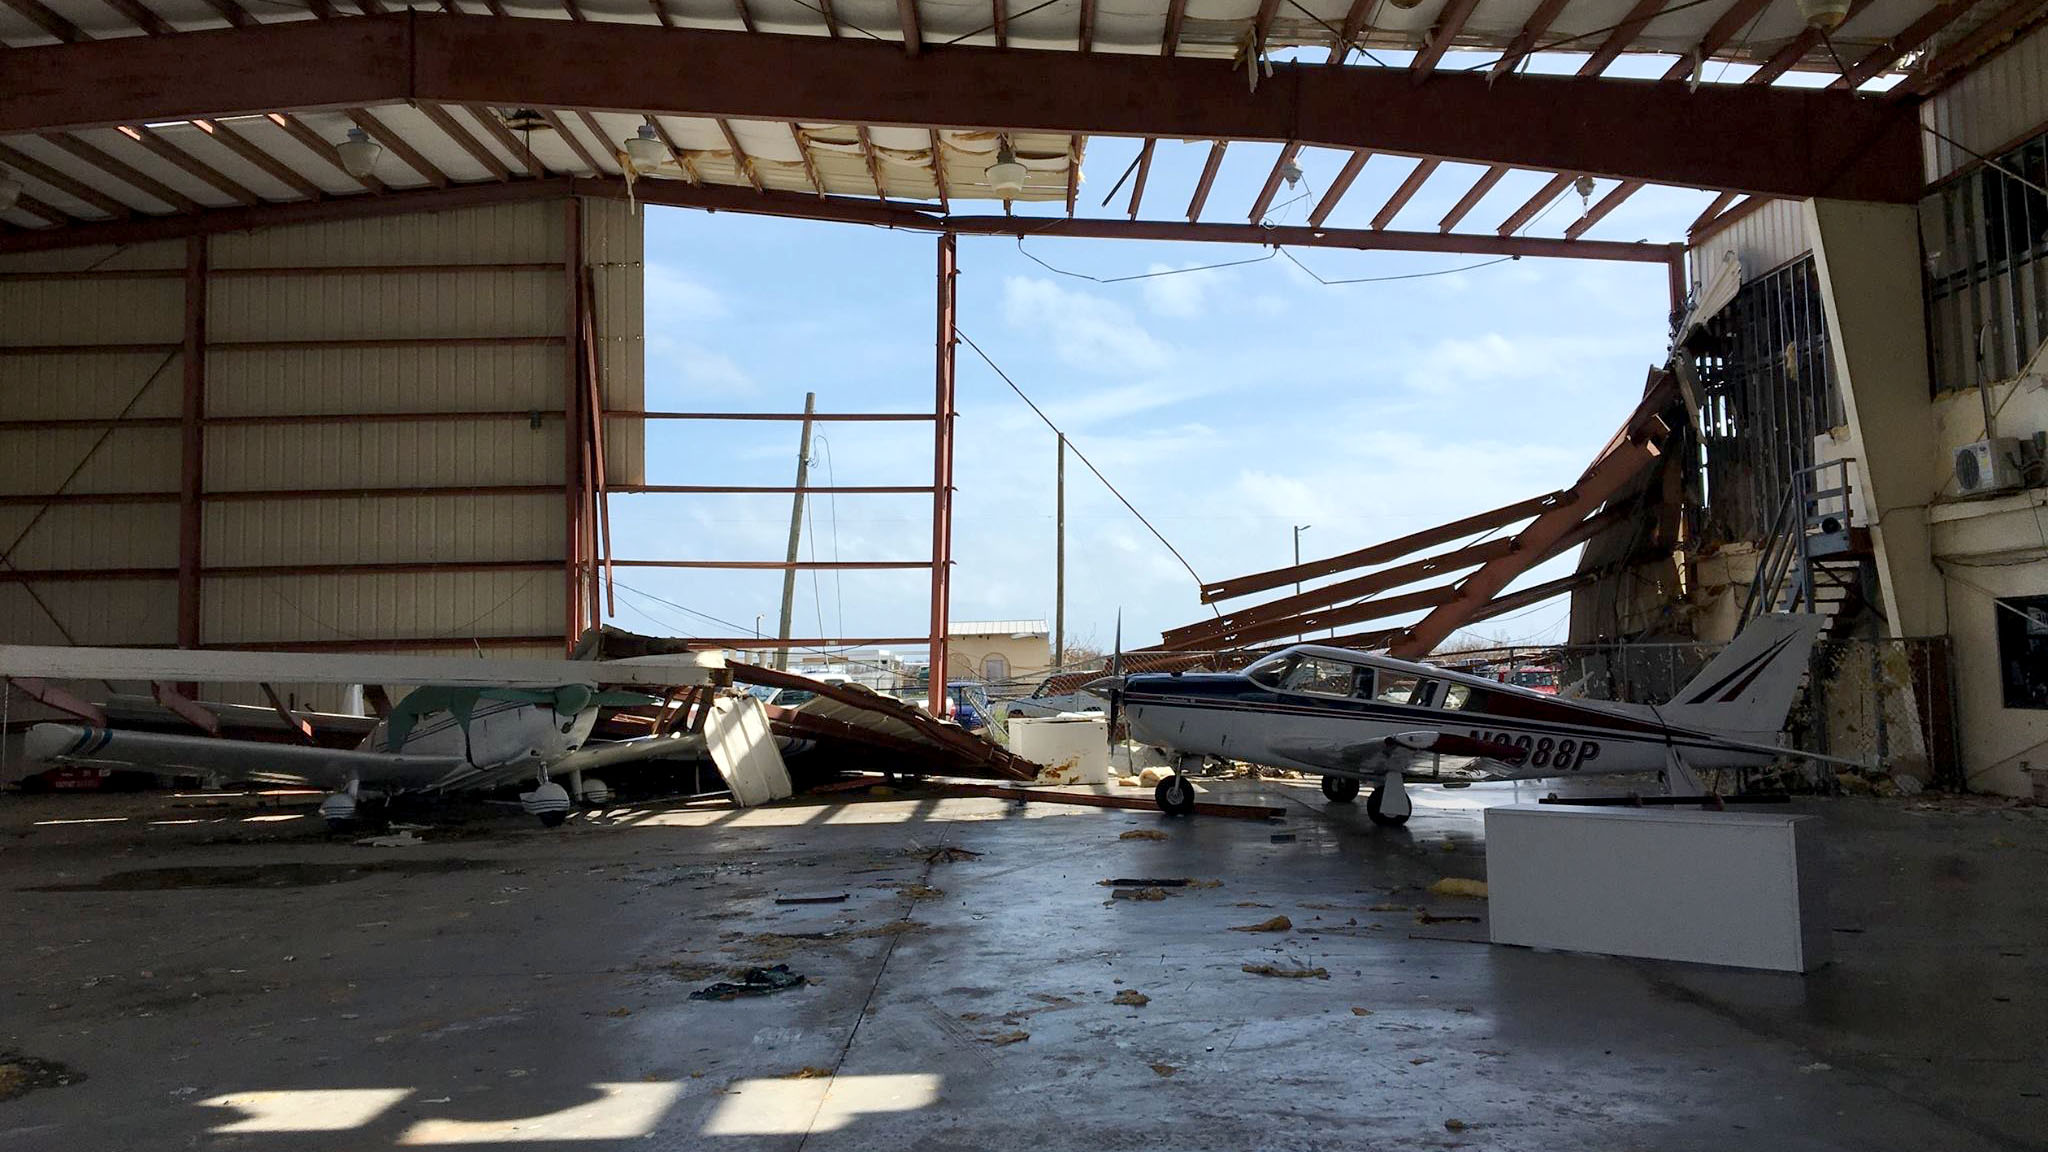 Damage to interior of the St. Croix facility. Photo courtesy of Bohlke International Airways.